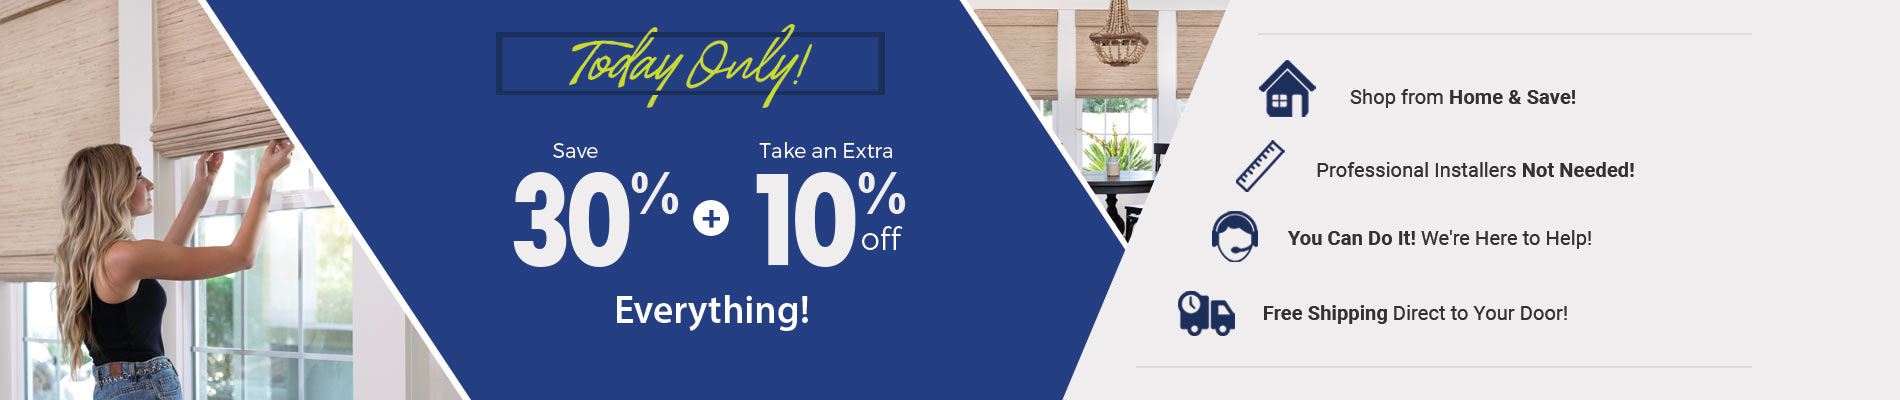 Save 30% + Take an Extra 10% Off